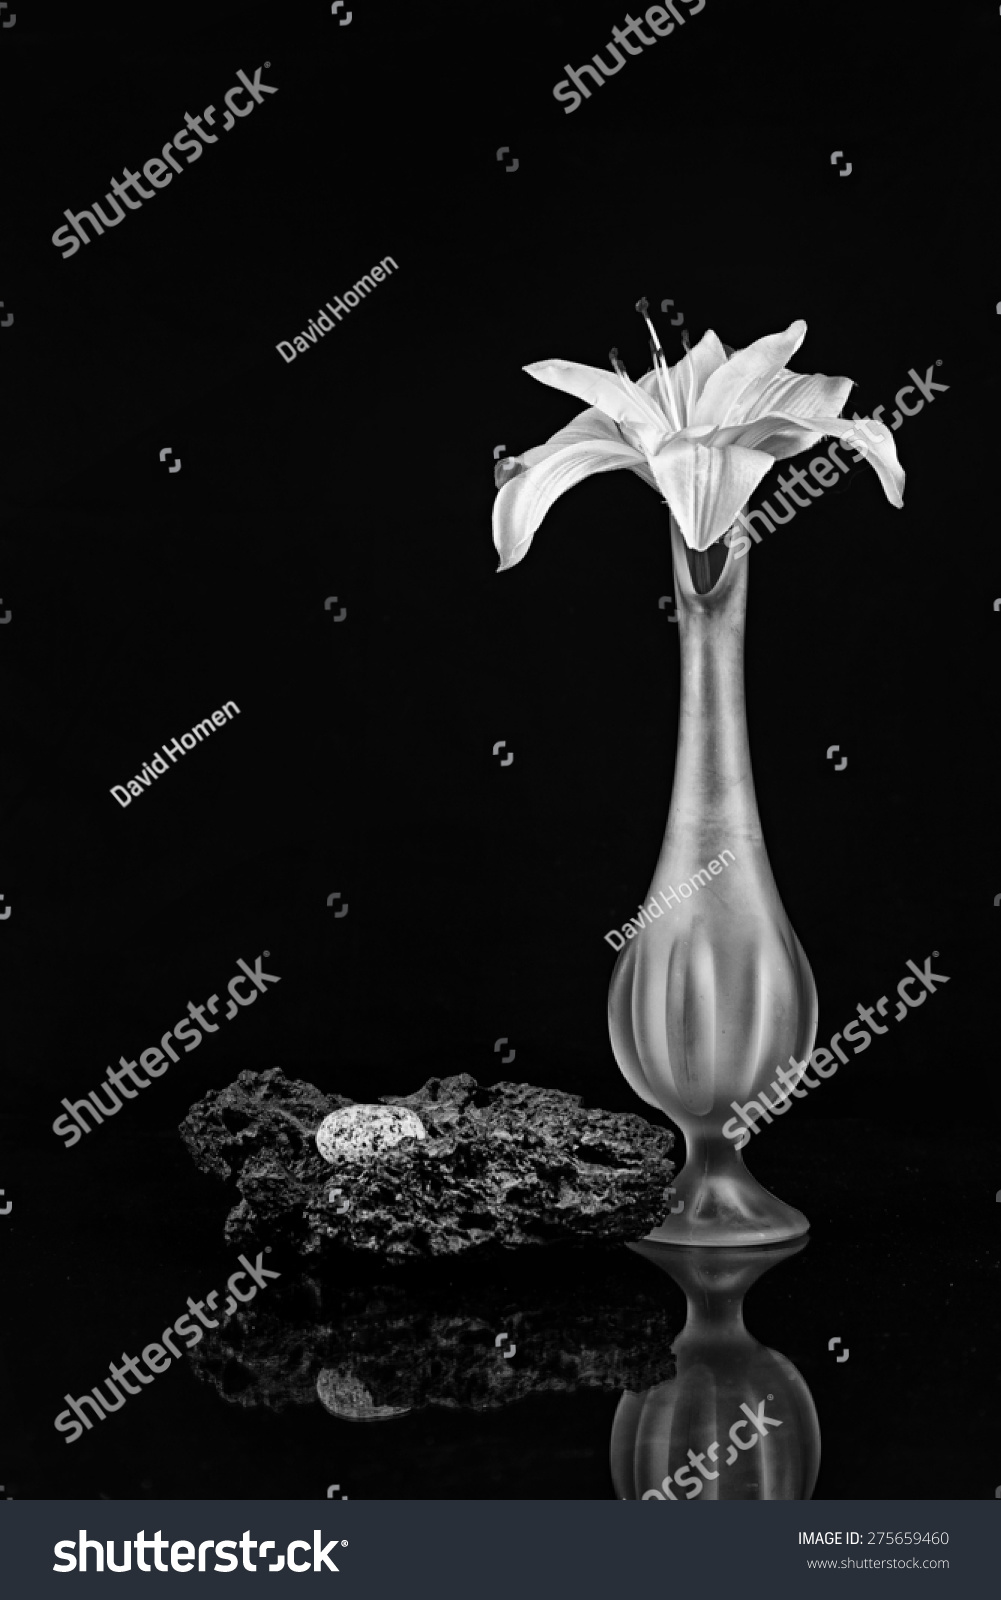 Silk lily tall bud vase granite stock photo 275659460 shutterstock silk lily in a tall bud vase with granite and lava rock in black and white reviewsmspy